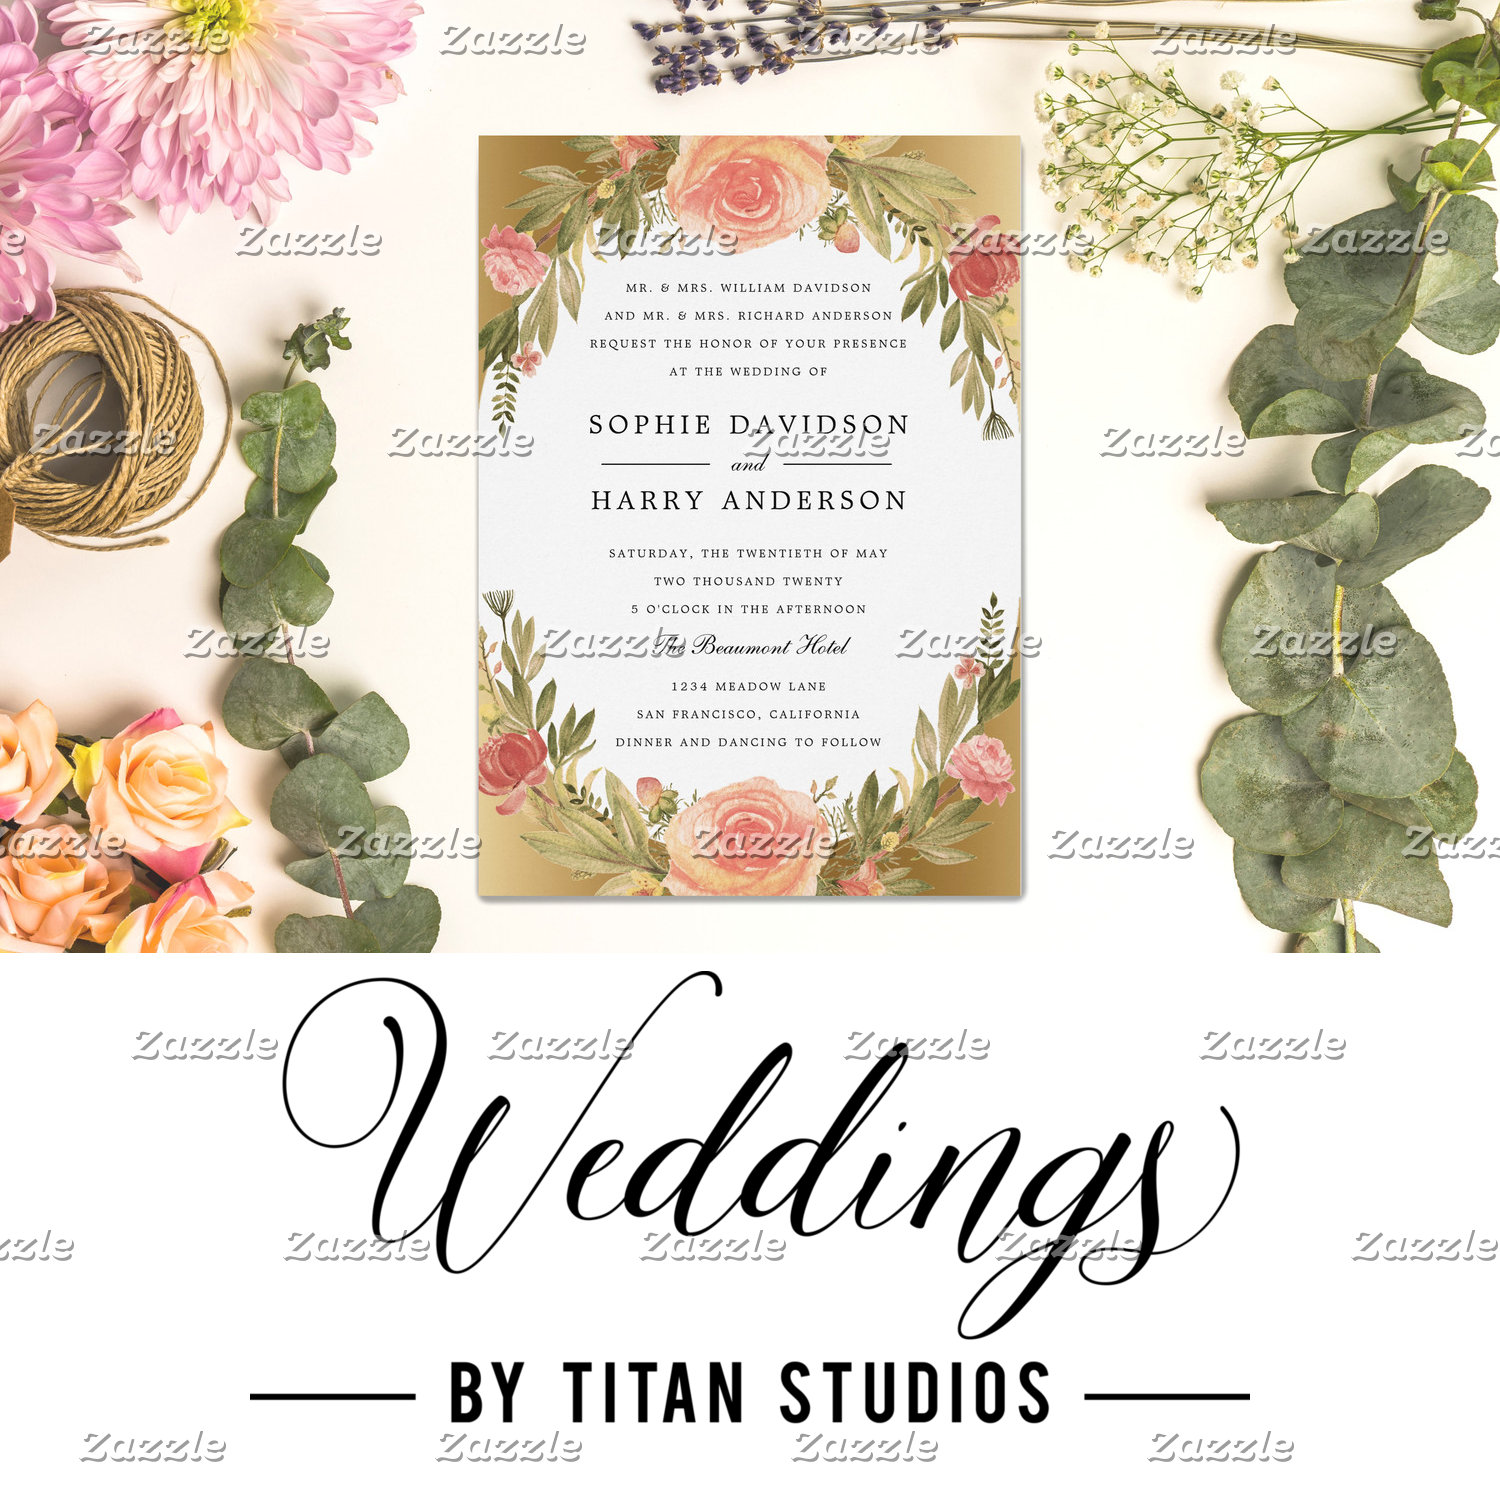 Weddings by Titan Studios